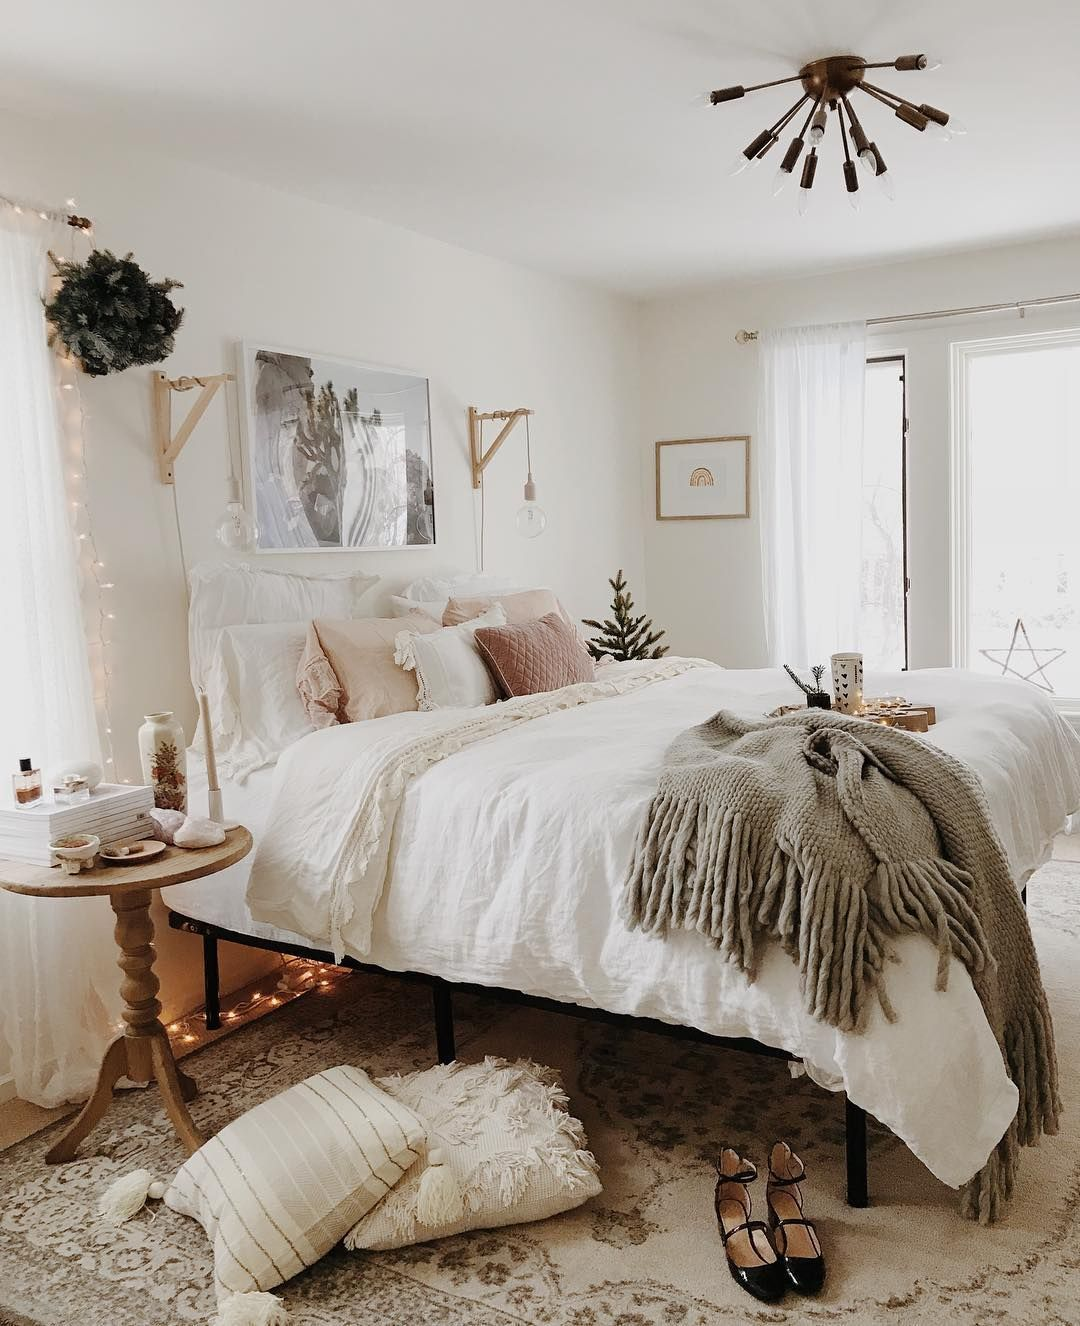 Creative Bedrooms That Any Teenager Will Love: Cramped Small Bedrooms Can Feel Claustrophobic, But A